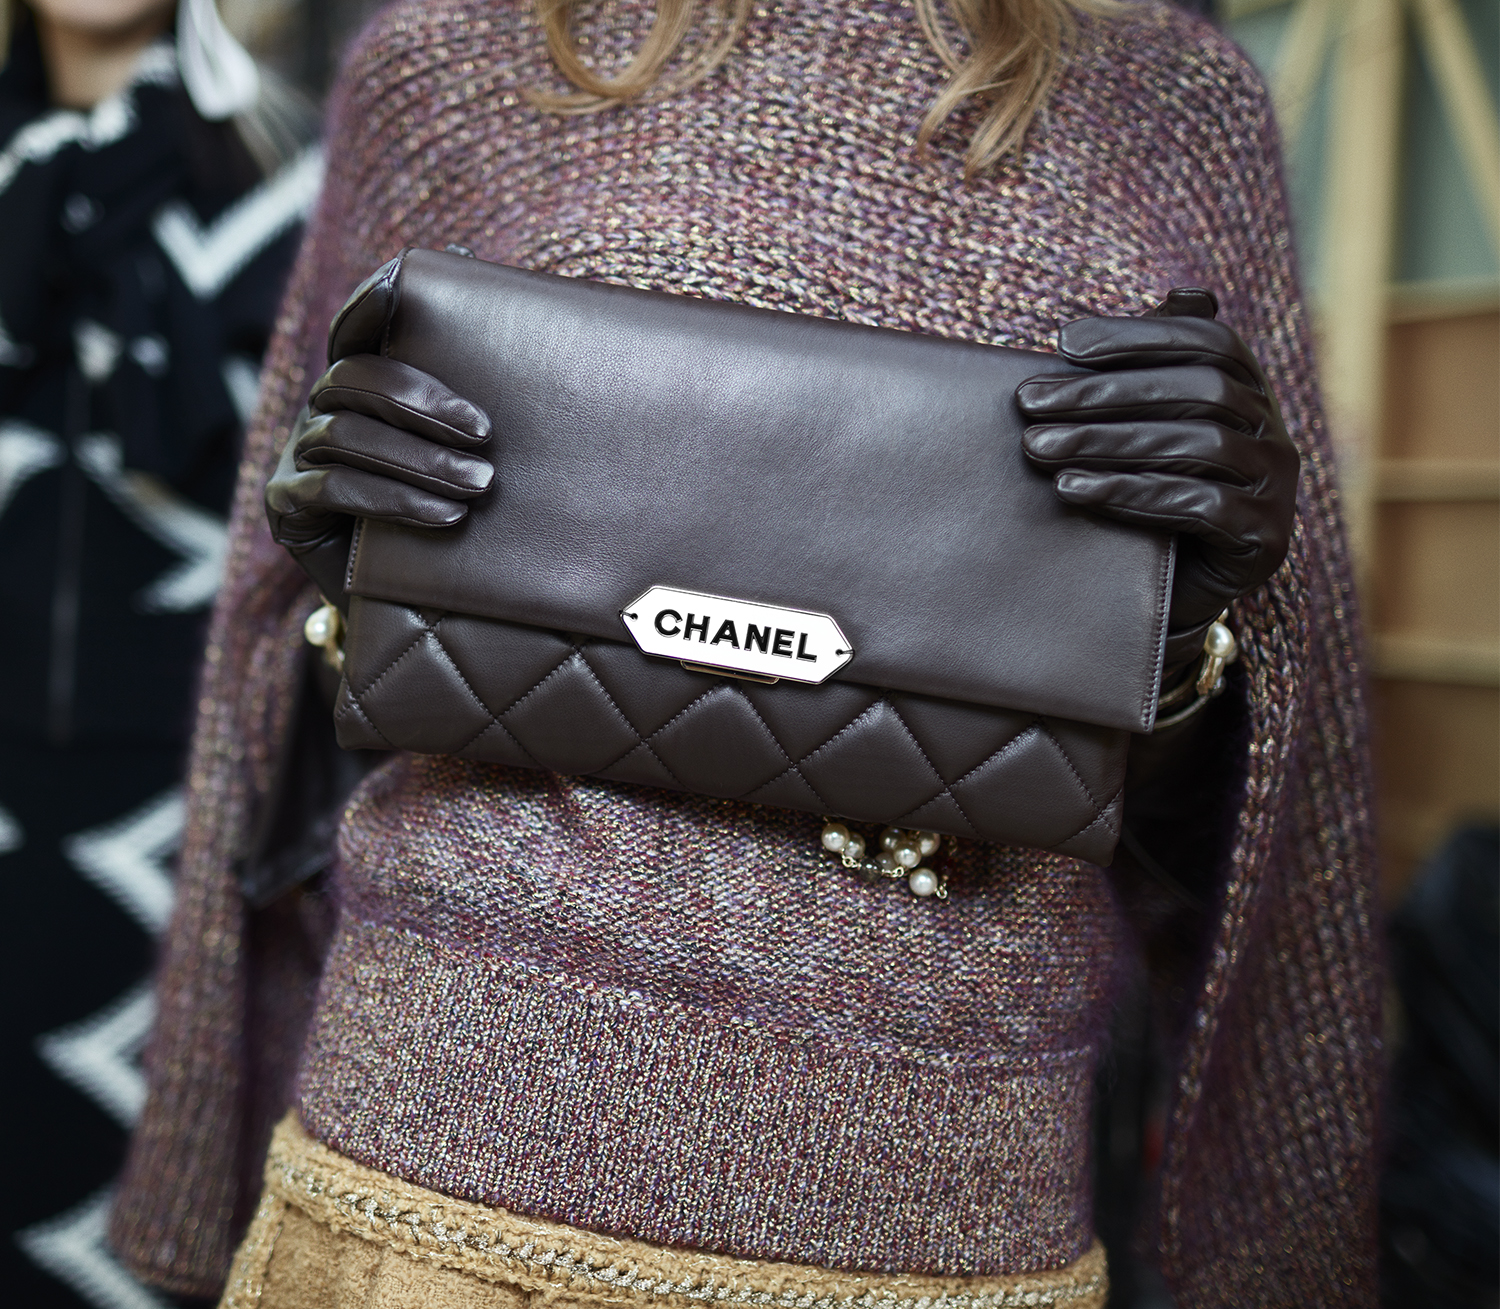 17_backstage-close-up-accessories-by-stcphane-gallois_ld